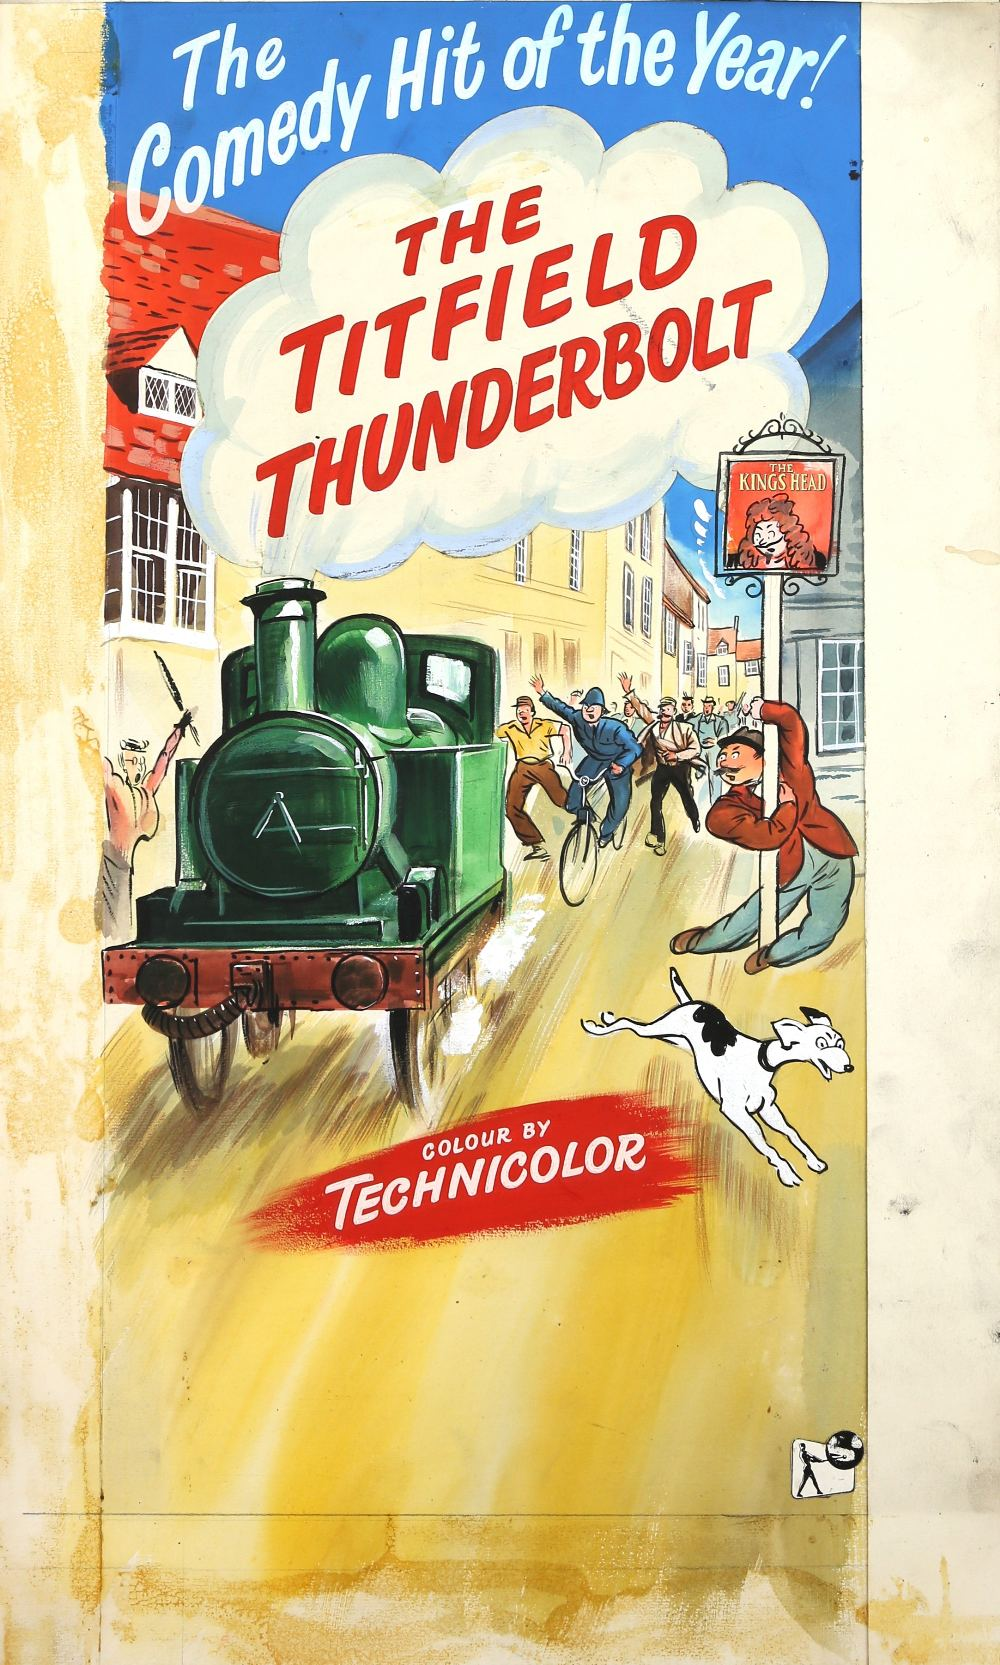 Lot 1284 - The Titfield Thunderbolt (1953) Original hand painted artwork for the UK film poster of the Ealing